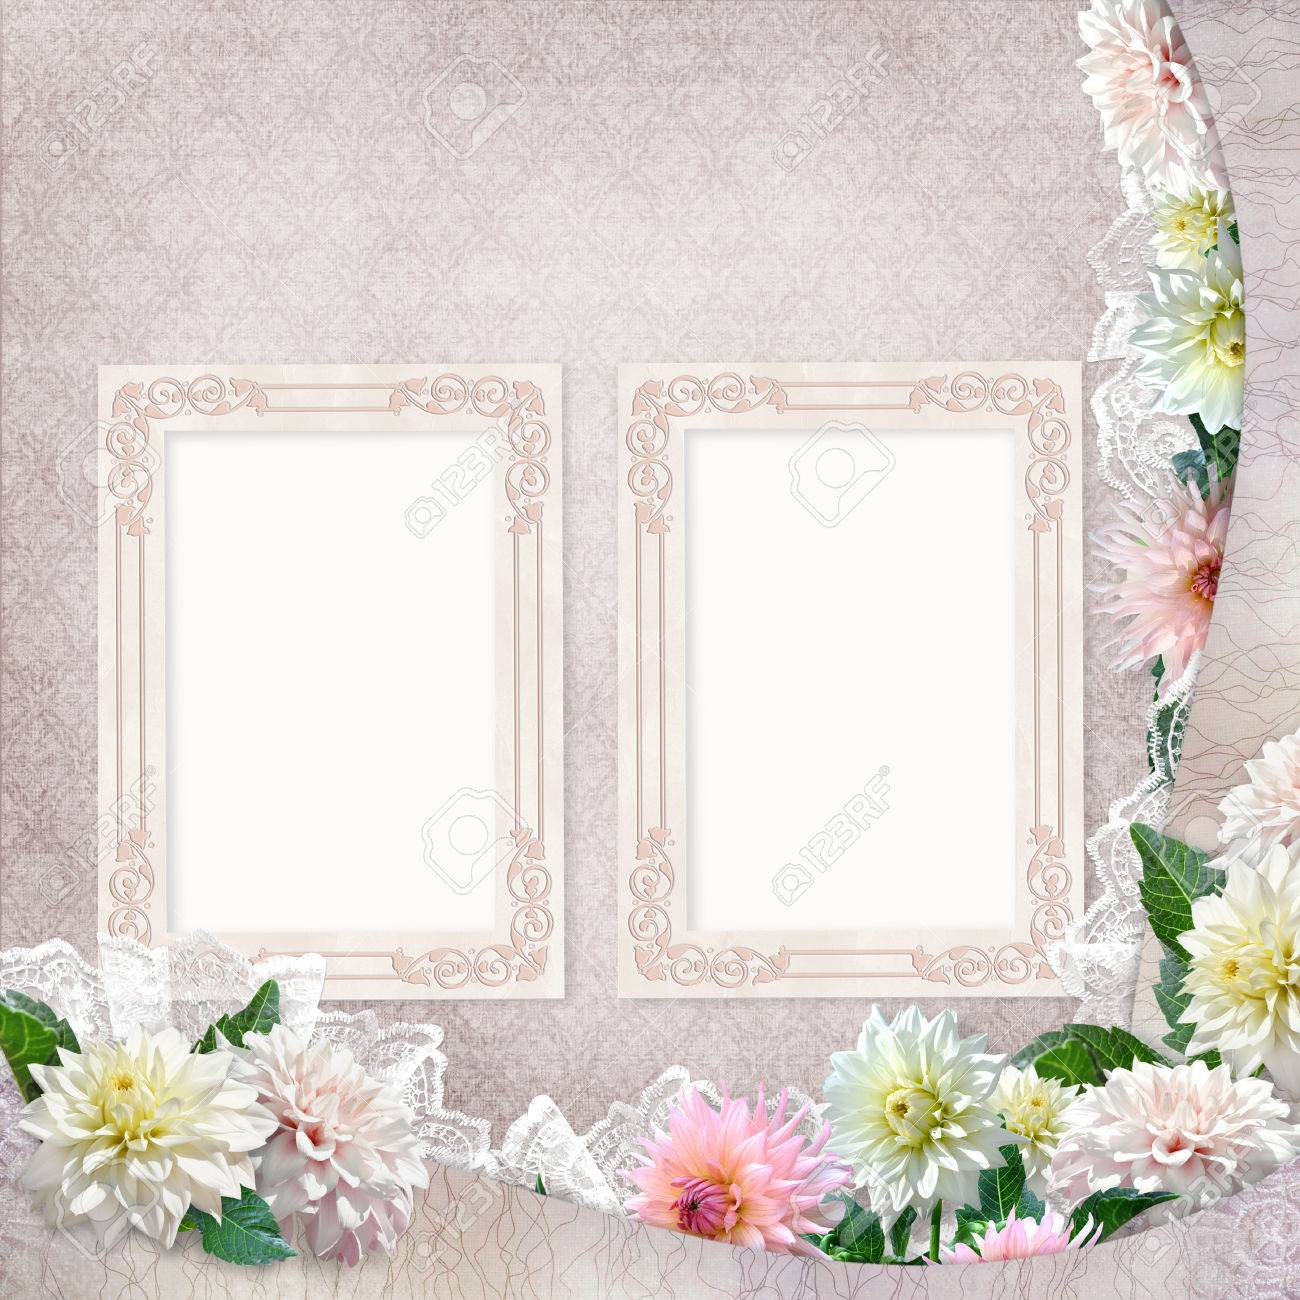 Beautiful borders with flowers lace and frames on the vintage beautiful borders with flowers lace and frames on the vintage background stock photo 57773154 izmirmasajfo